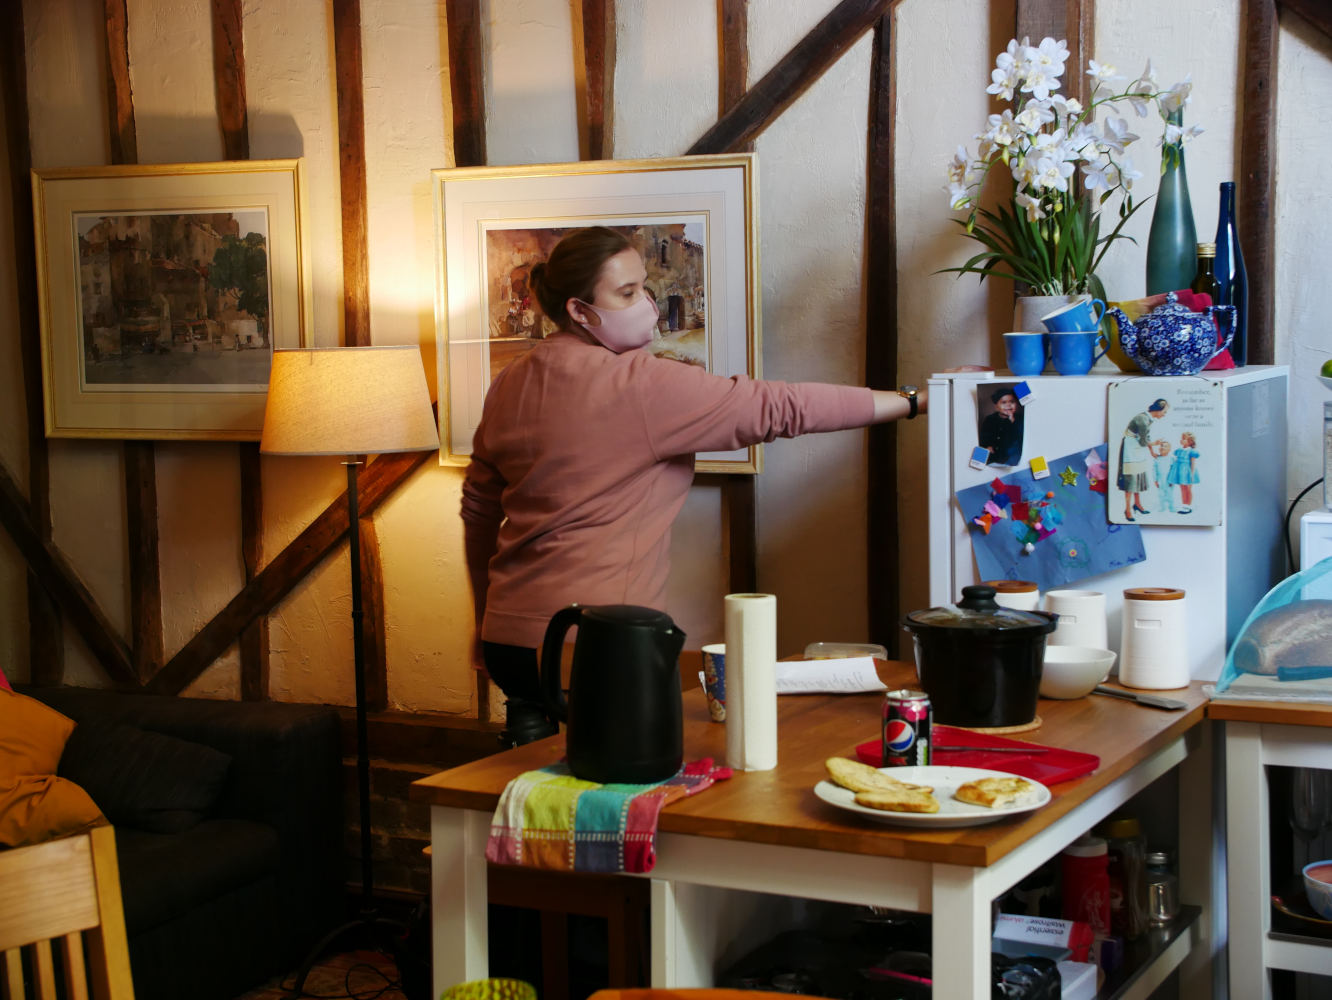 Behind the scenes photo from comedy short film Keep It in the Family of Production Designer Alice Pontin